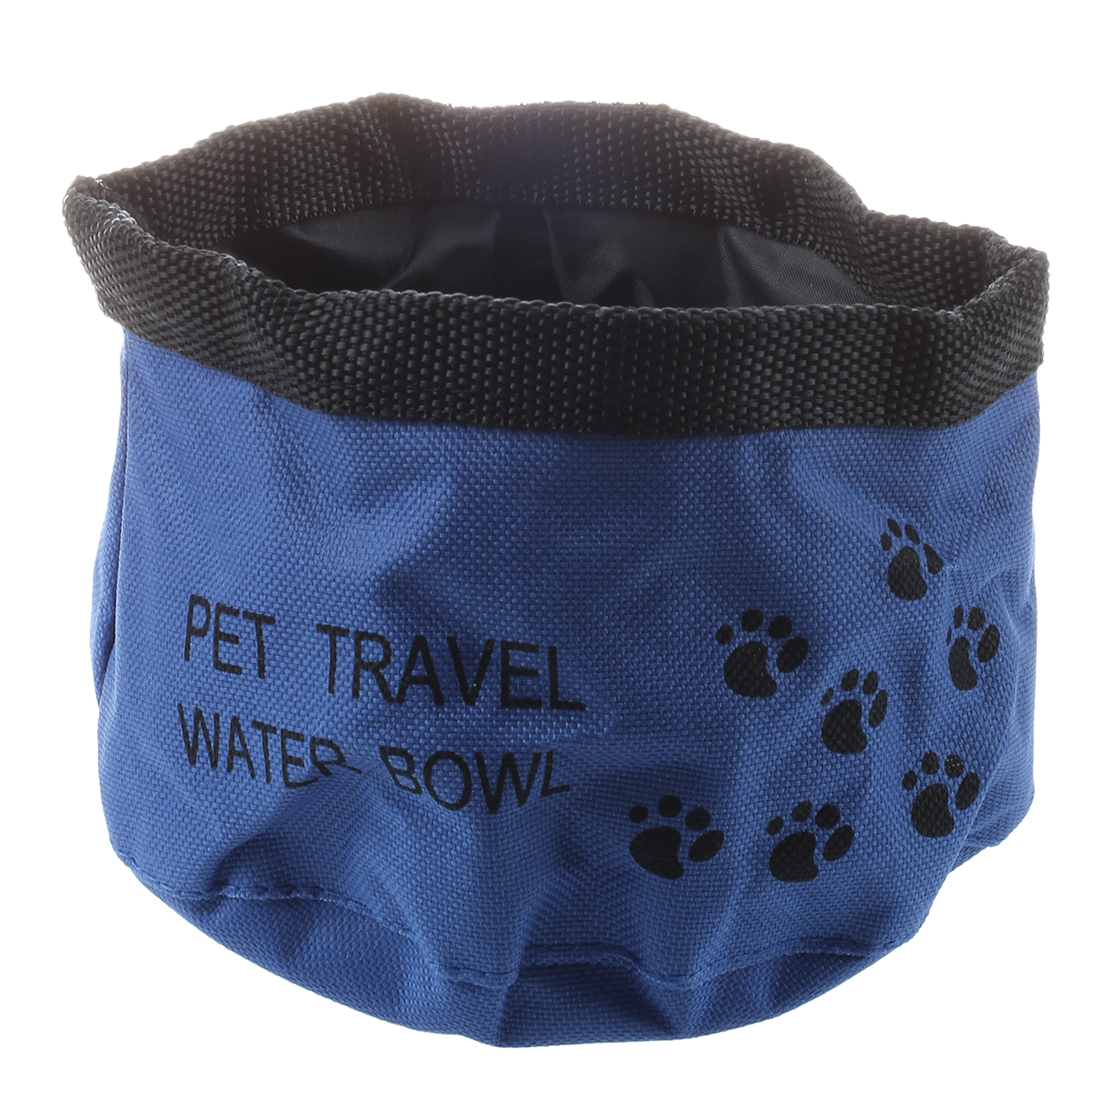 Portable Dog Pet Travel Collapsible Food Water Bowls Pets: Aliexpress.com : Buy Pet Dog Cat Bowl Water Food Feeder